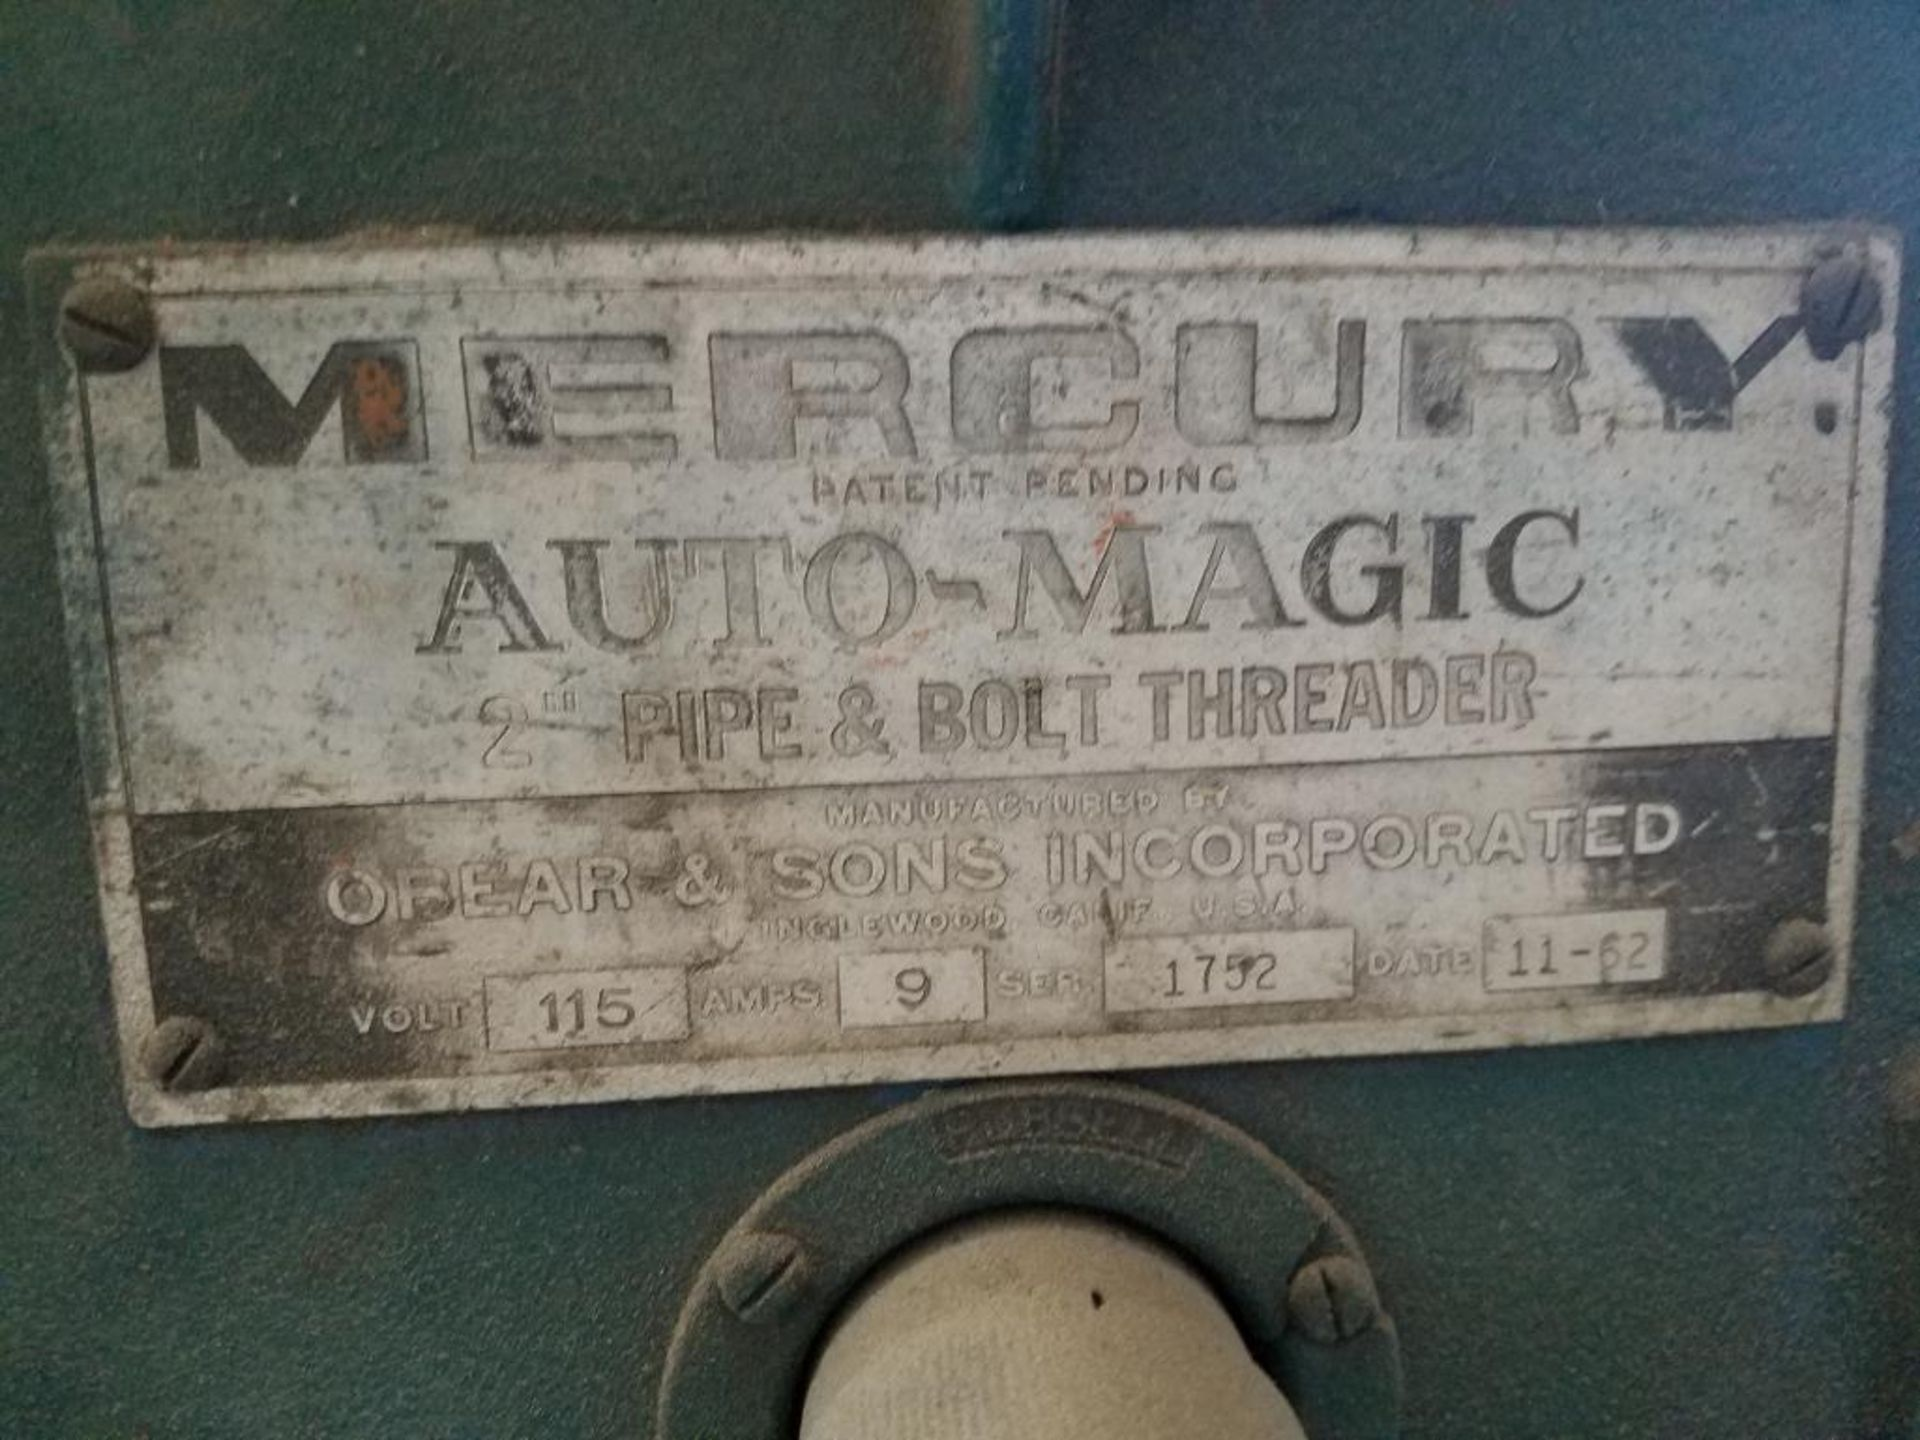 1962 Mercury pipe and bolt threader - Image 2 of 5